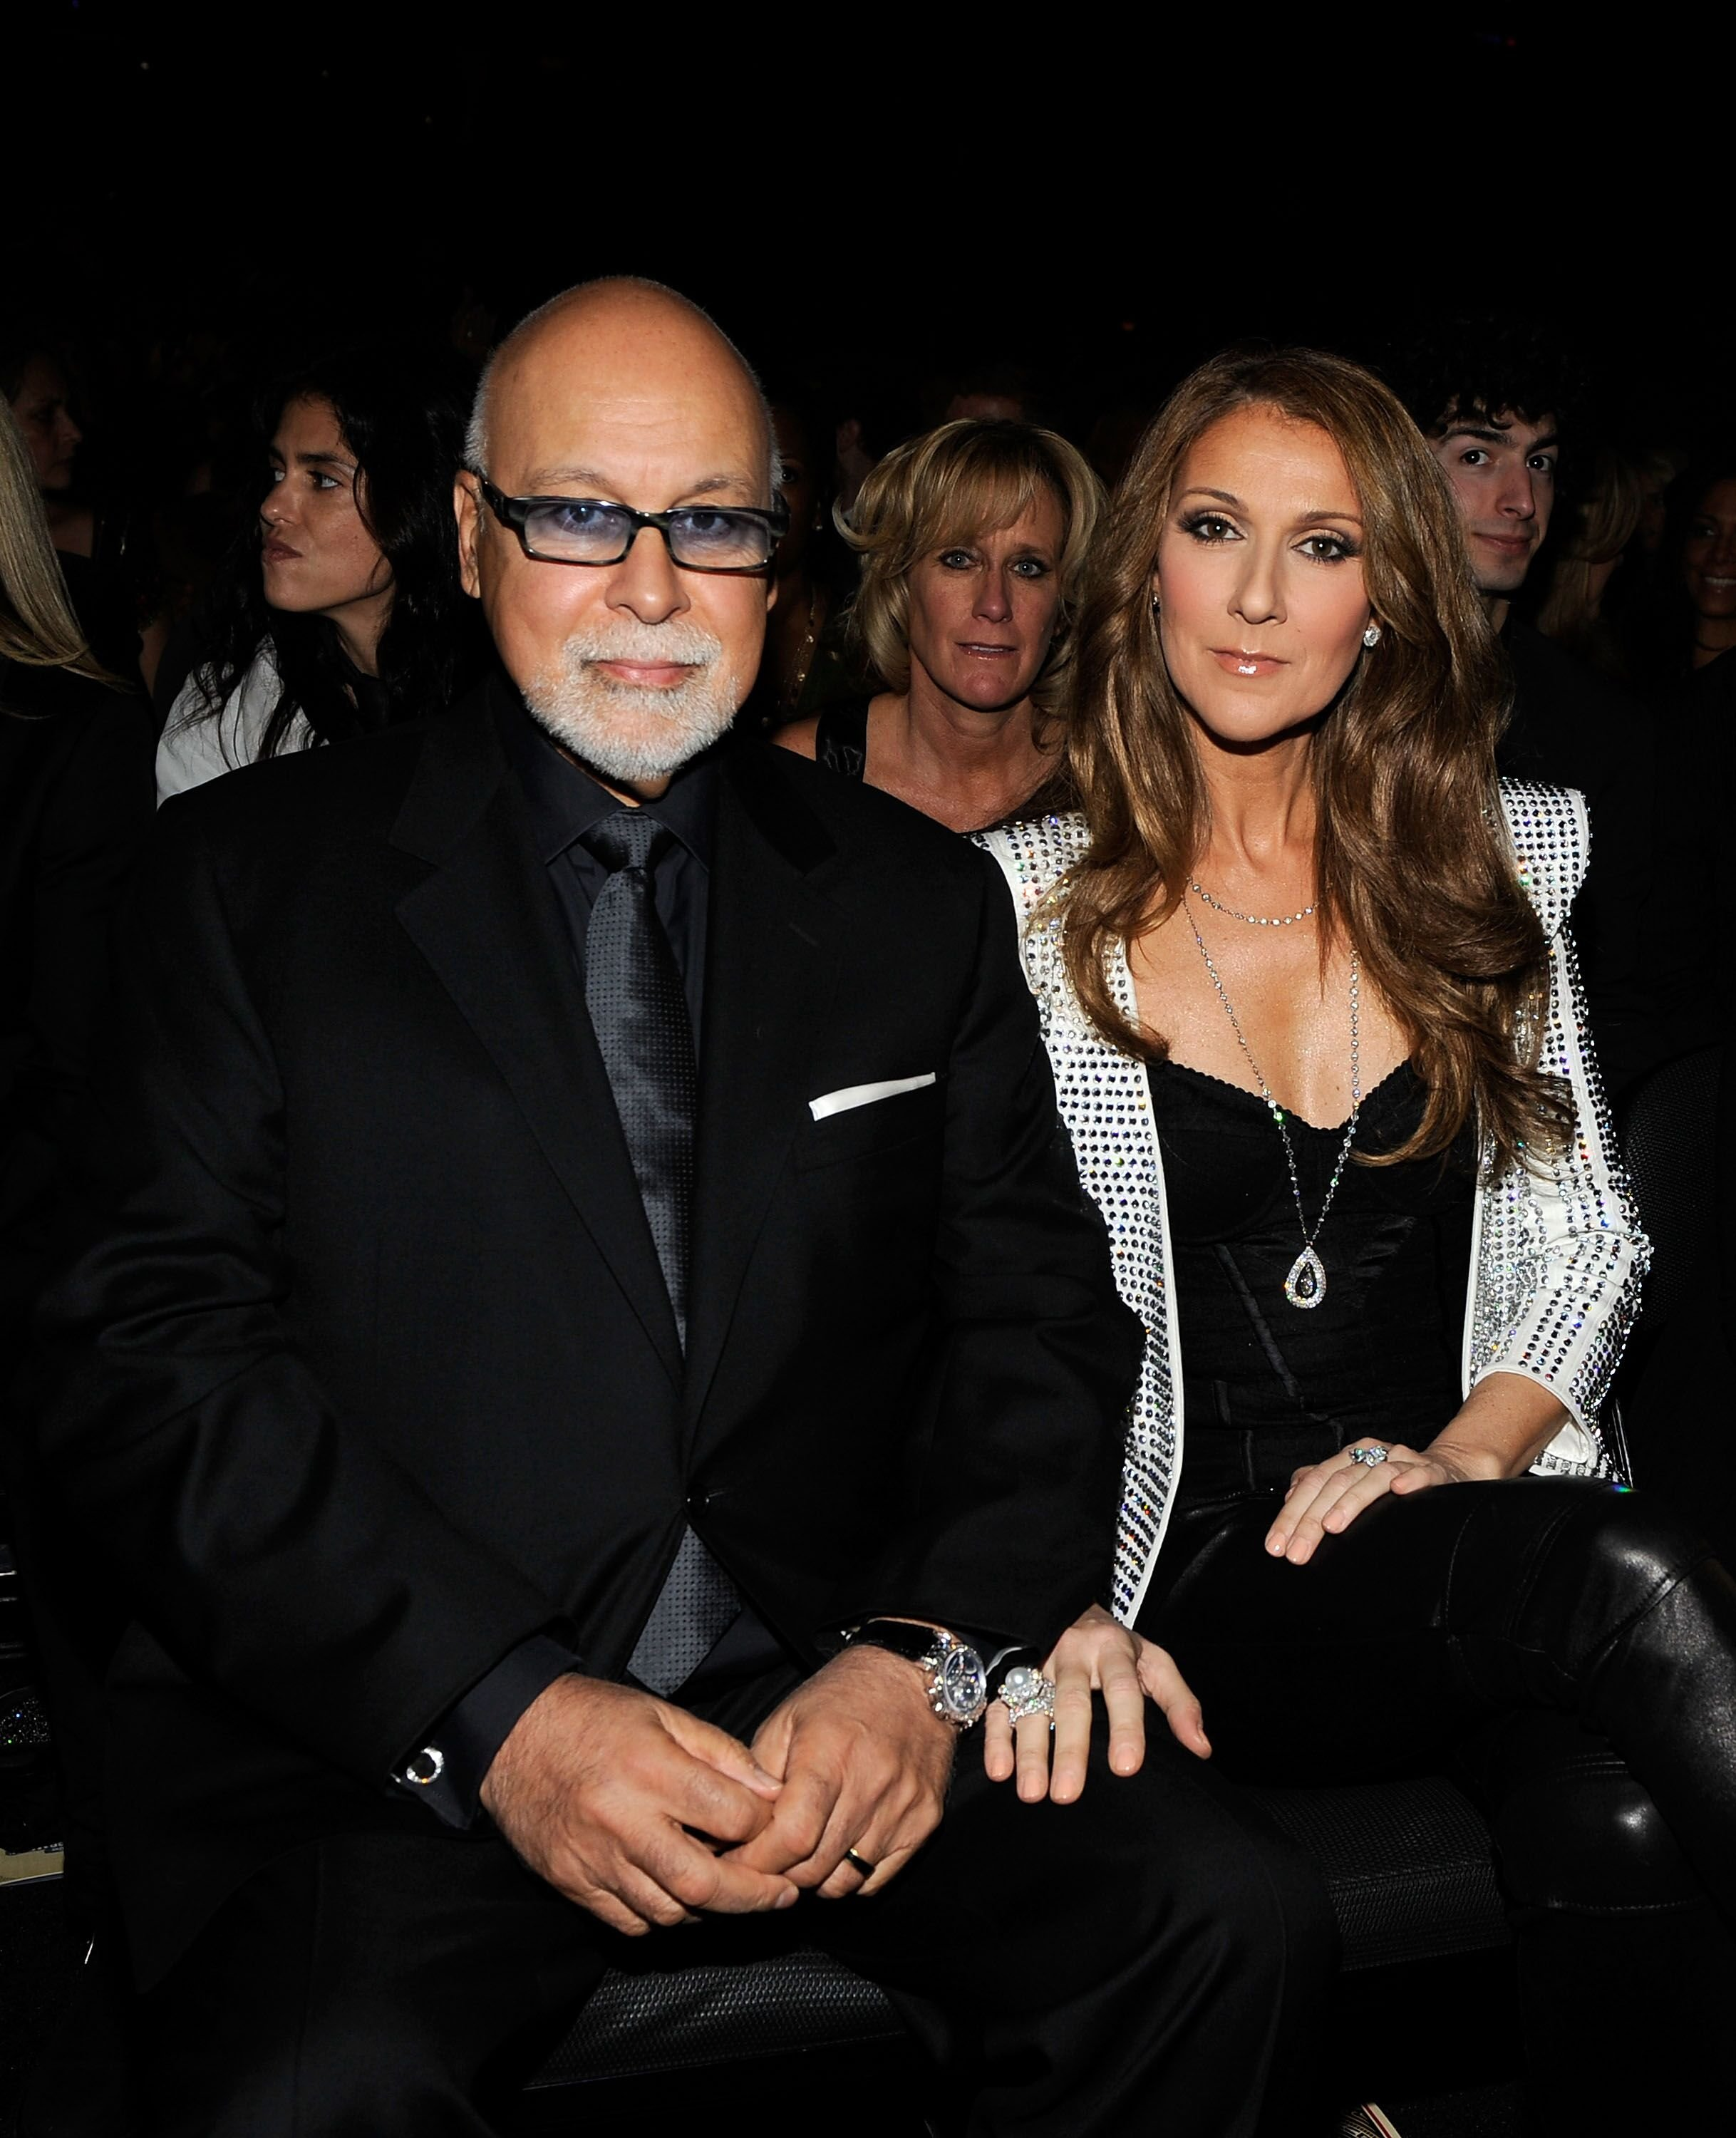 Celine Dion and Rene Angelil at the 52nd Annual GRAMMY Awards in 2010 | Source: Getty Images